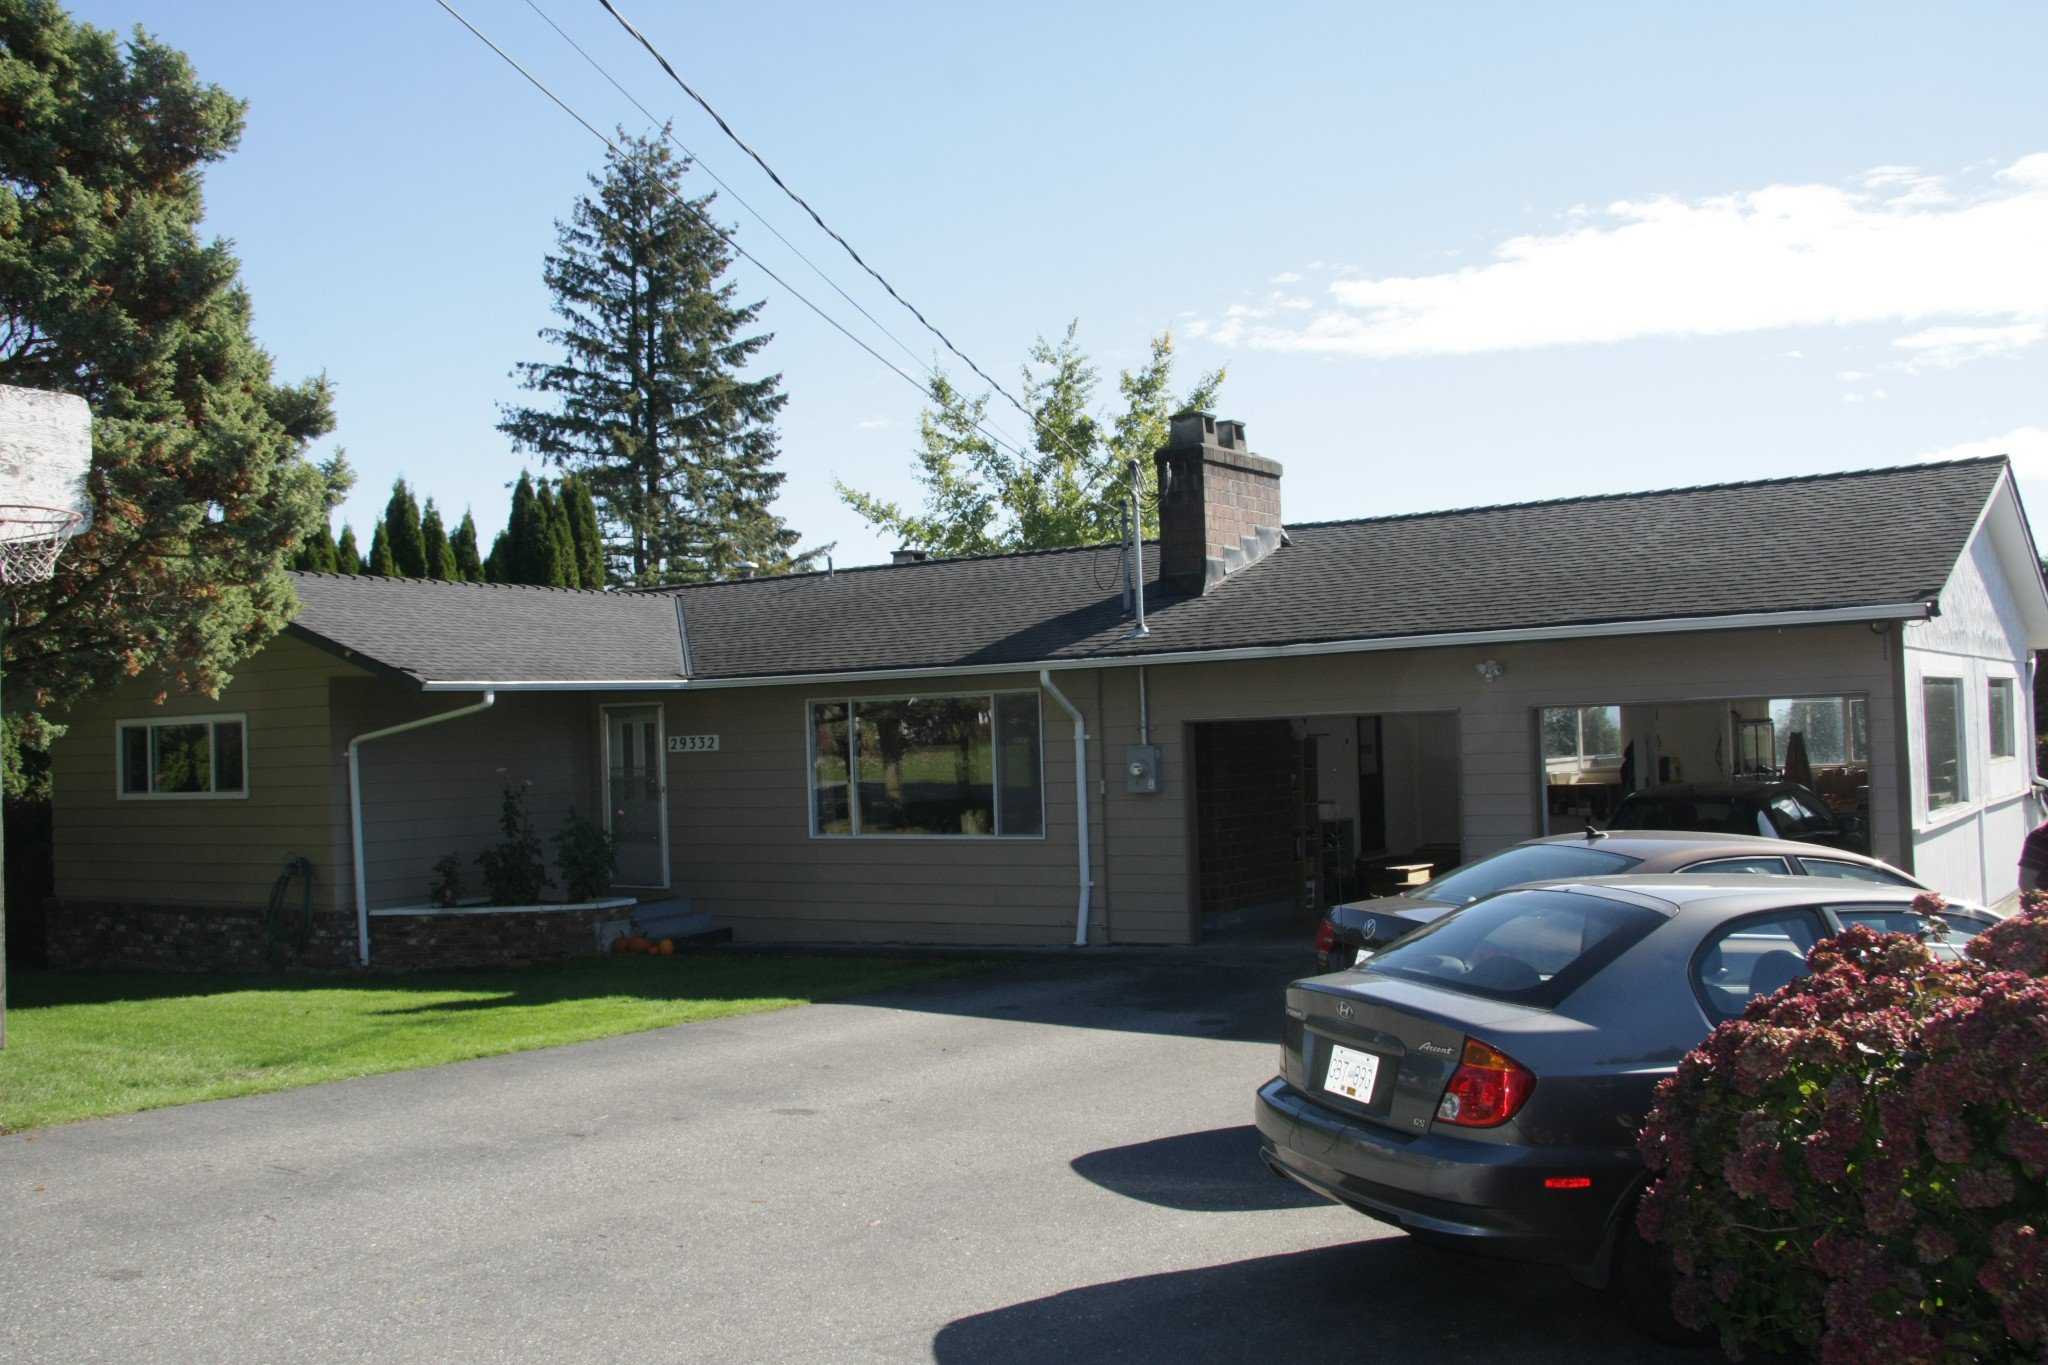 Main Photo: 29332 SunValley Crescent in Abbotsford: House for sale : MLS®# R2314705